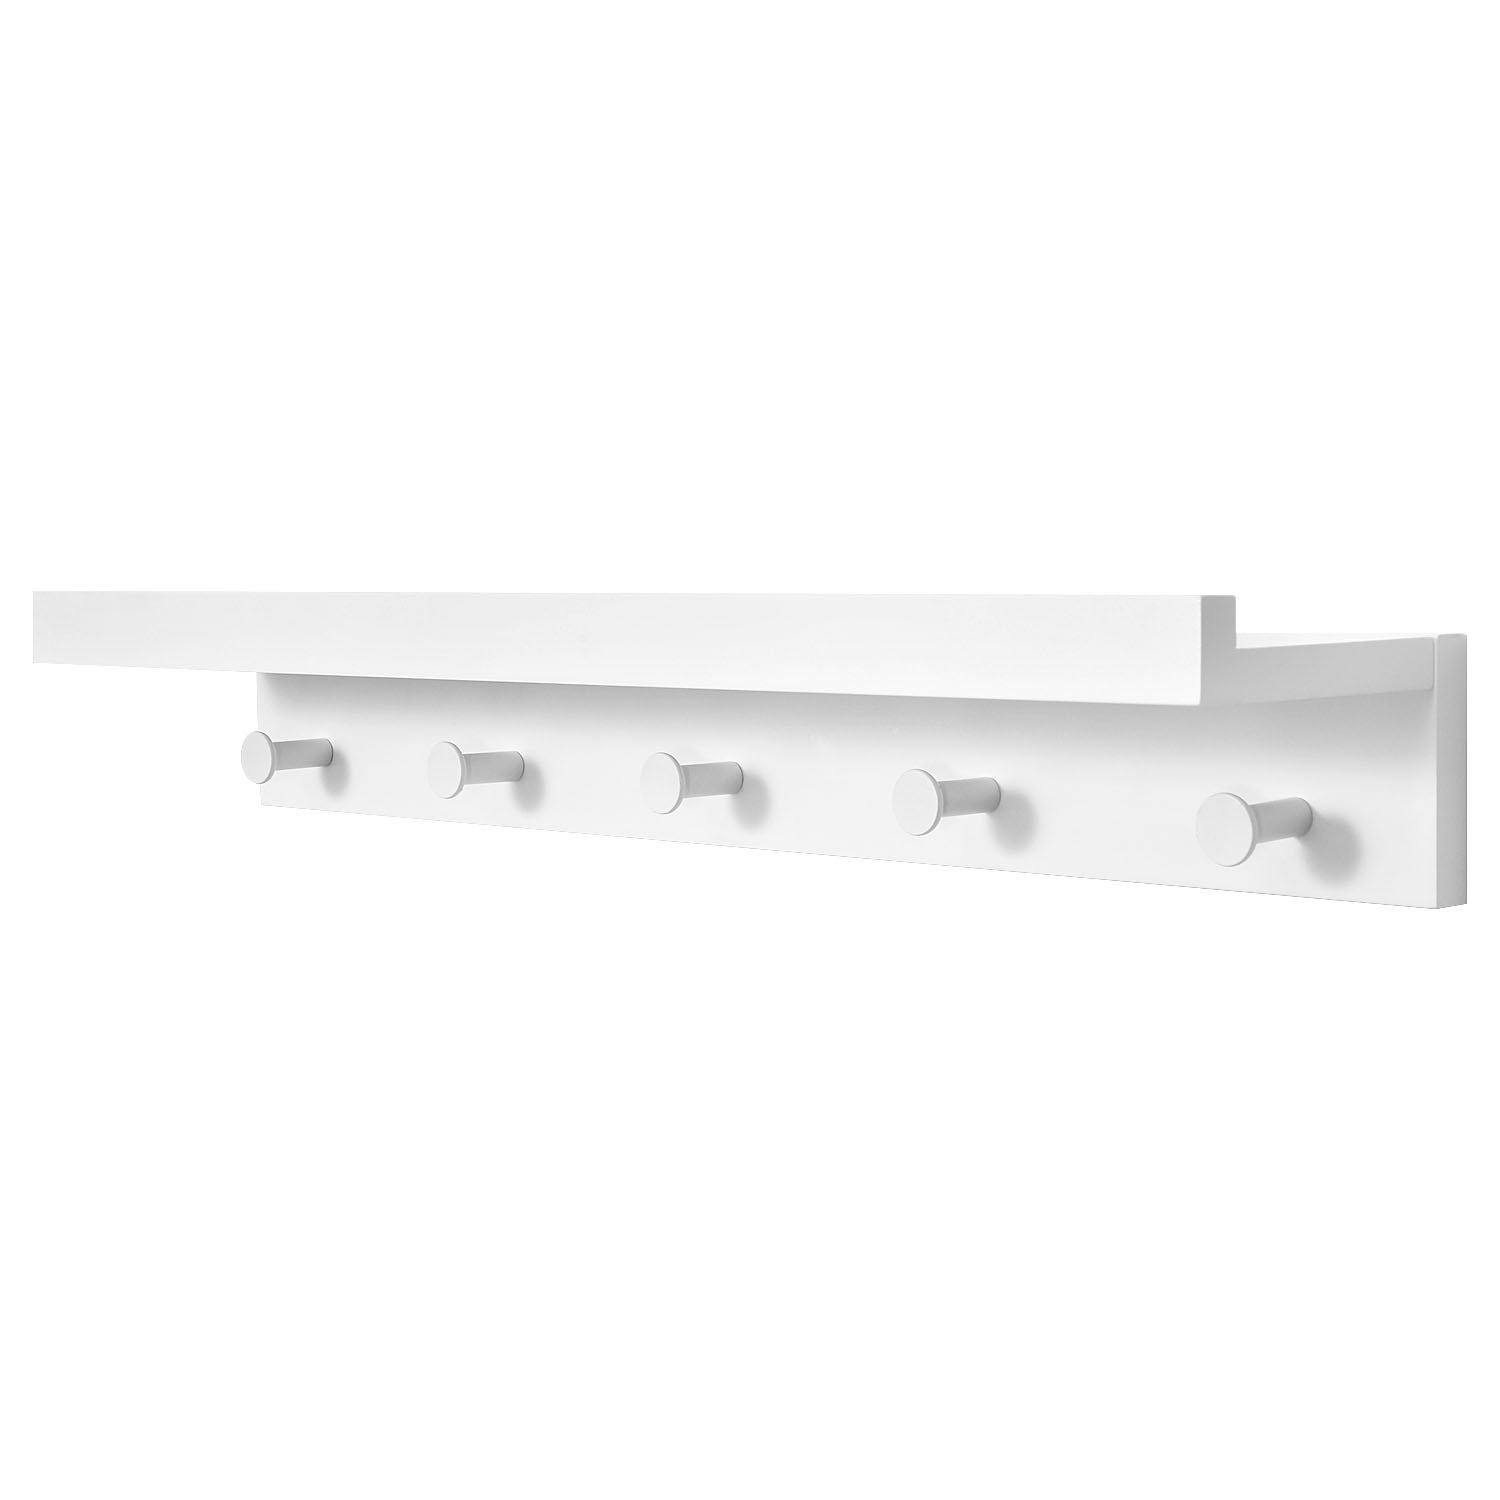 Ollieroo Bamboo Wall Mounted Shelf, Coat Hooks Rack with 5 Alloy Hooks for Entryway, Bedroom, Kitchen, Bathroom, Length 24'' (White) by Ollieroo